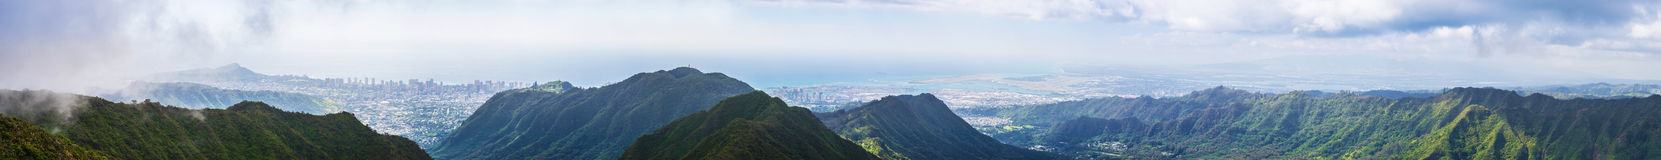 Panorama of scenery from central Oahu Royalty Free Stock Photography